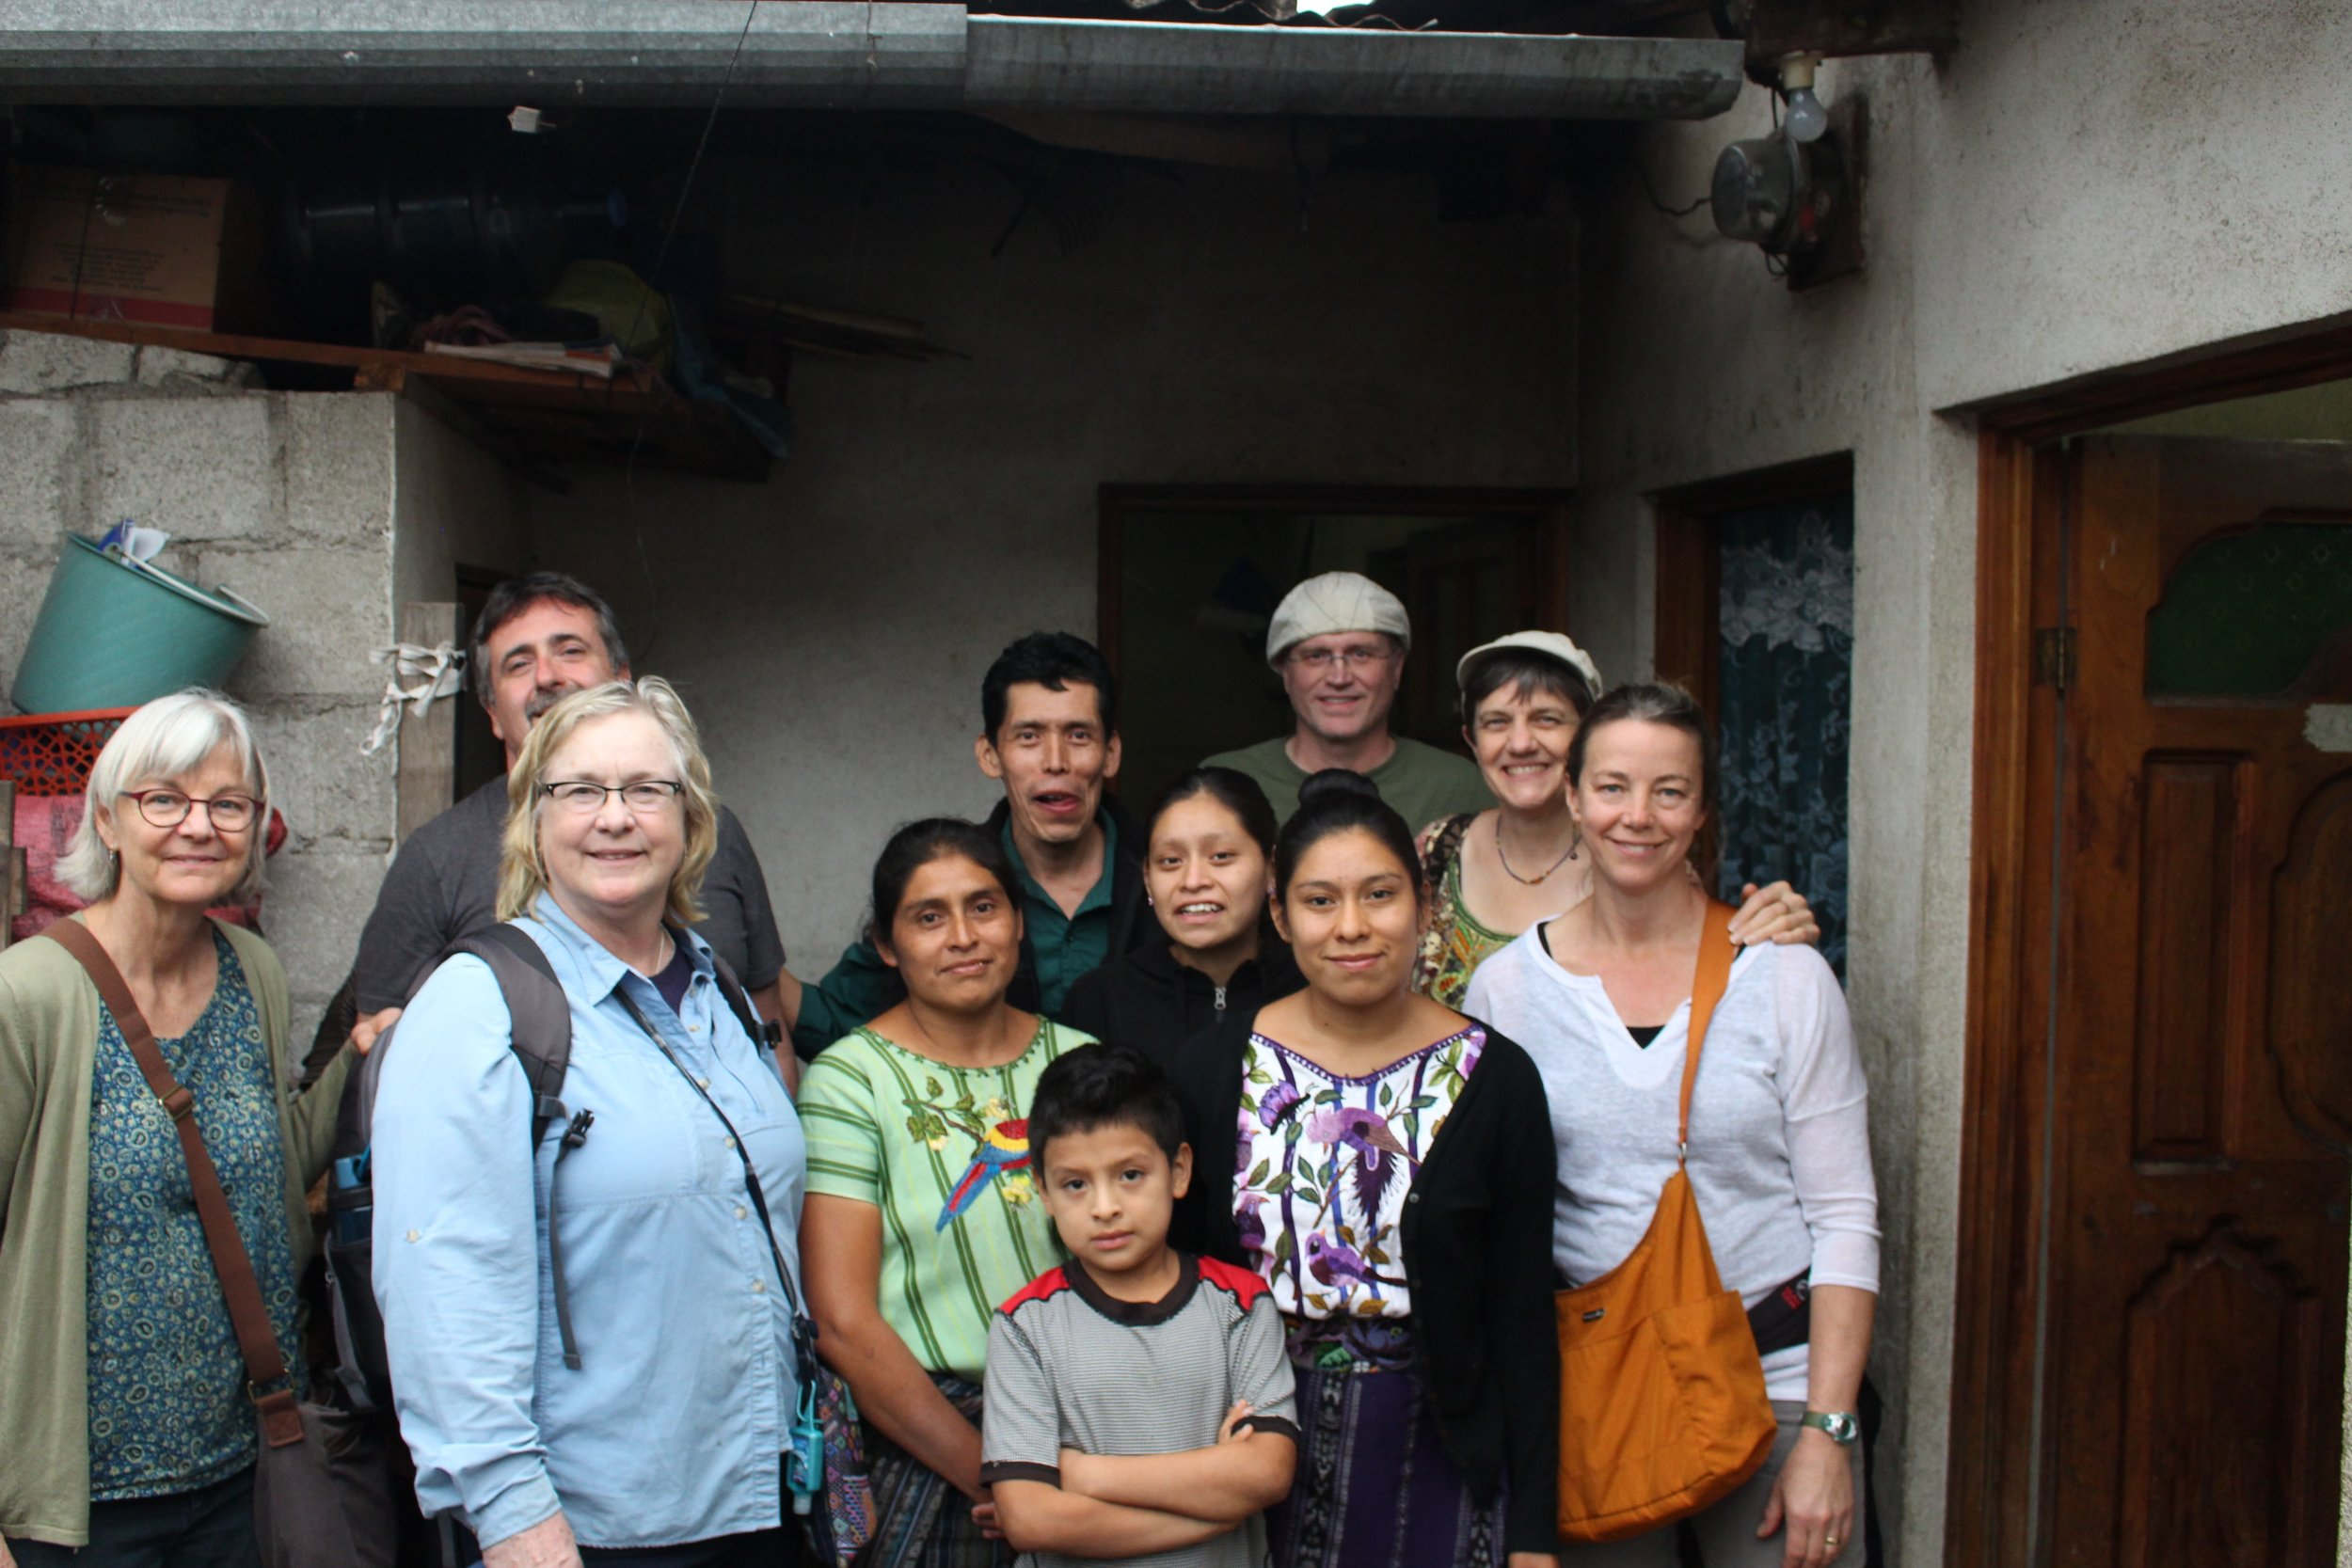 Guatemala - Culture and Coffee - This 10 day trip will start in Antigua, the UNESCO world heritage city, seeing the town, the market, and more. From there we will travel to beautiful Lake Atitlan where our time will be spent visiting the Tzu'tujil Maya families of Farmer to Farmer. We will be giving out school scholarships to the students, visit some families, and other places of interest around Santiago Atitlan.We will then travel into the mountains of Huehuetenango to visit the Mam Maya members of the coffee cooperative where our Farmer to Farmer coffee is grown. We will visit farms and spend time getting to know the people that grow our coffee, specifically the women coffee farmers.This is a small group trip that will be tailored to individual interests within the group. Limited to 10 people.Trip leader Jody Slocum has been leading tours with Farmer to Farmer for 15 years. This is a great way to experience Guatemala up close and personal.For more information email Jody call her at 541-510-8889